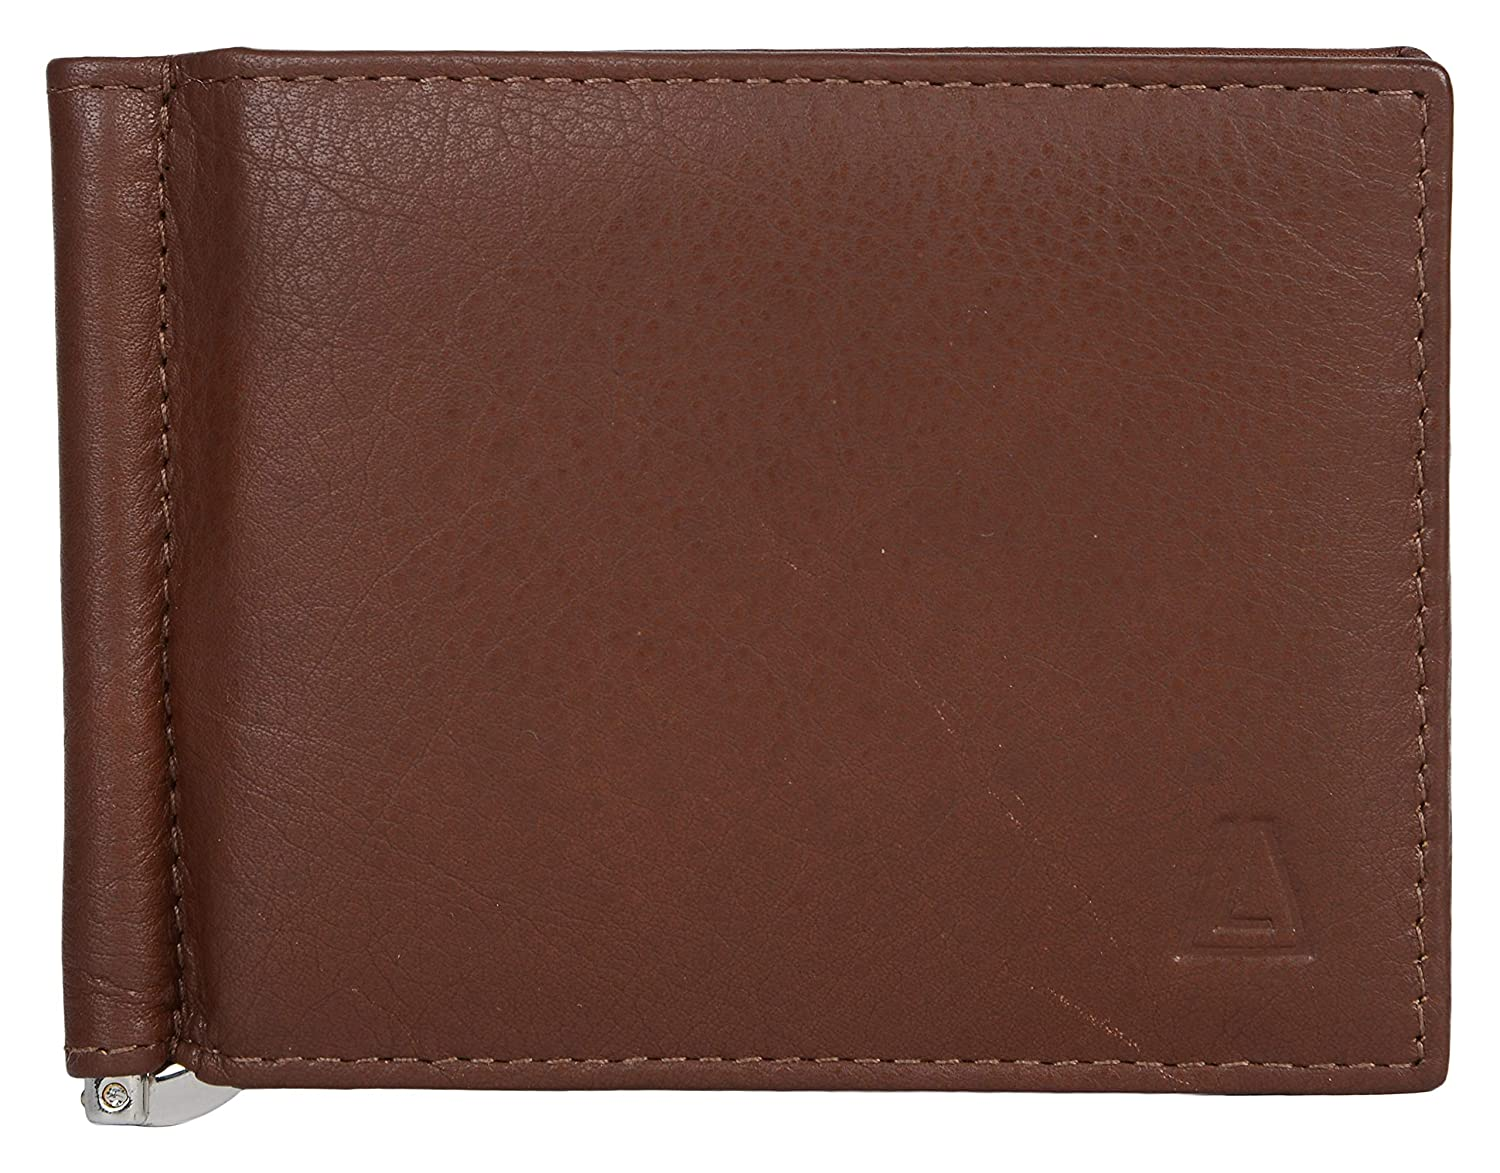 147c2e8b1395 Leather Architect Men's 100% Leather RFID Blocking Bifold Saffiano Wallet  with Money Clip